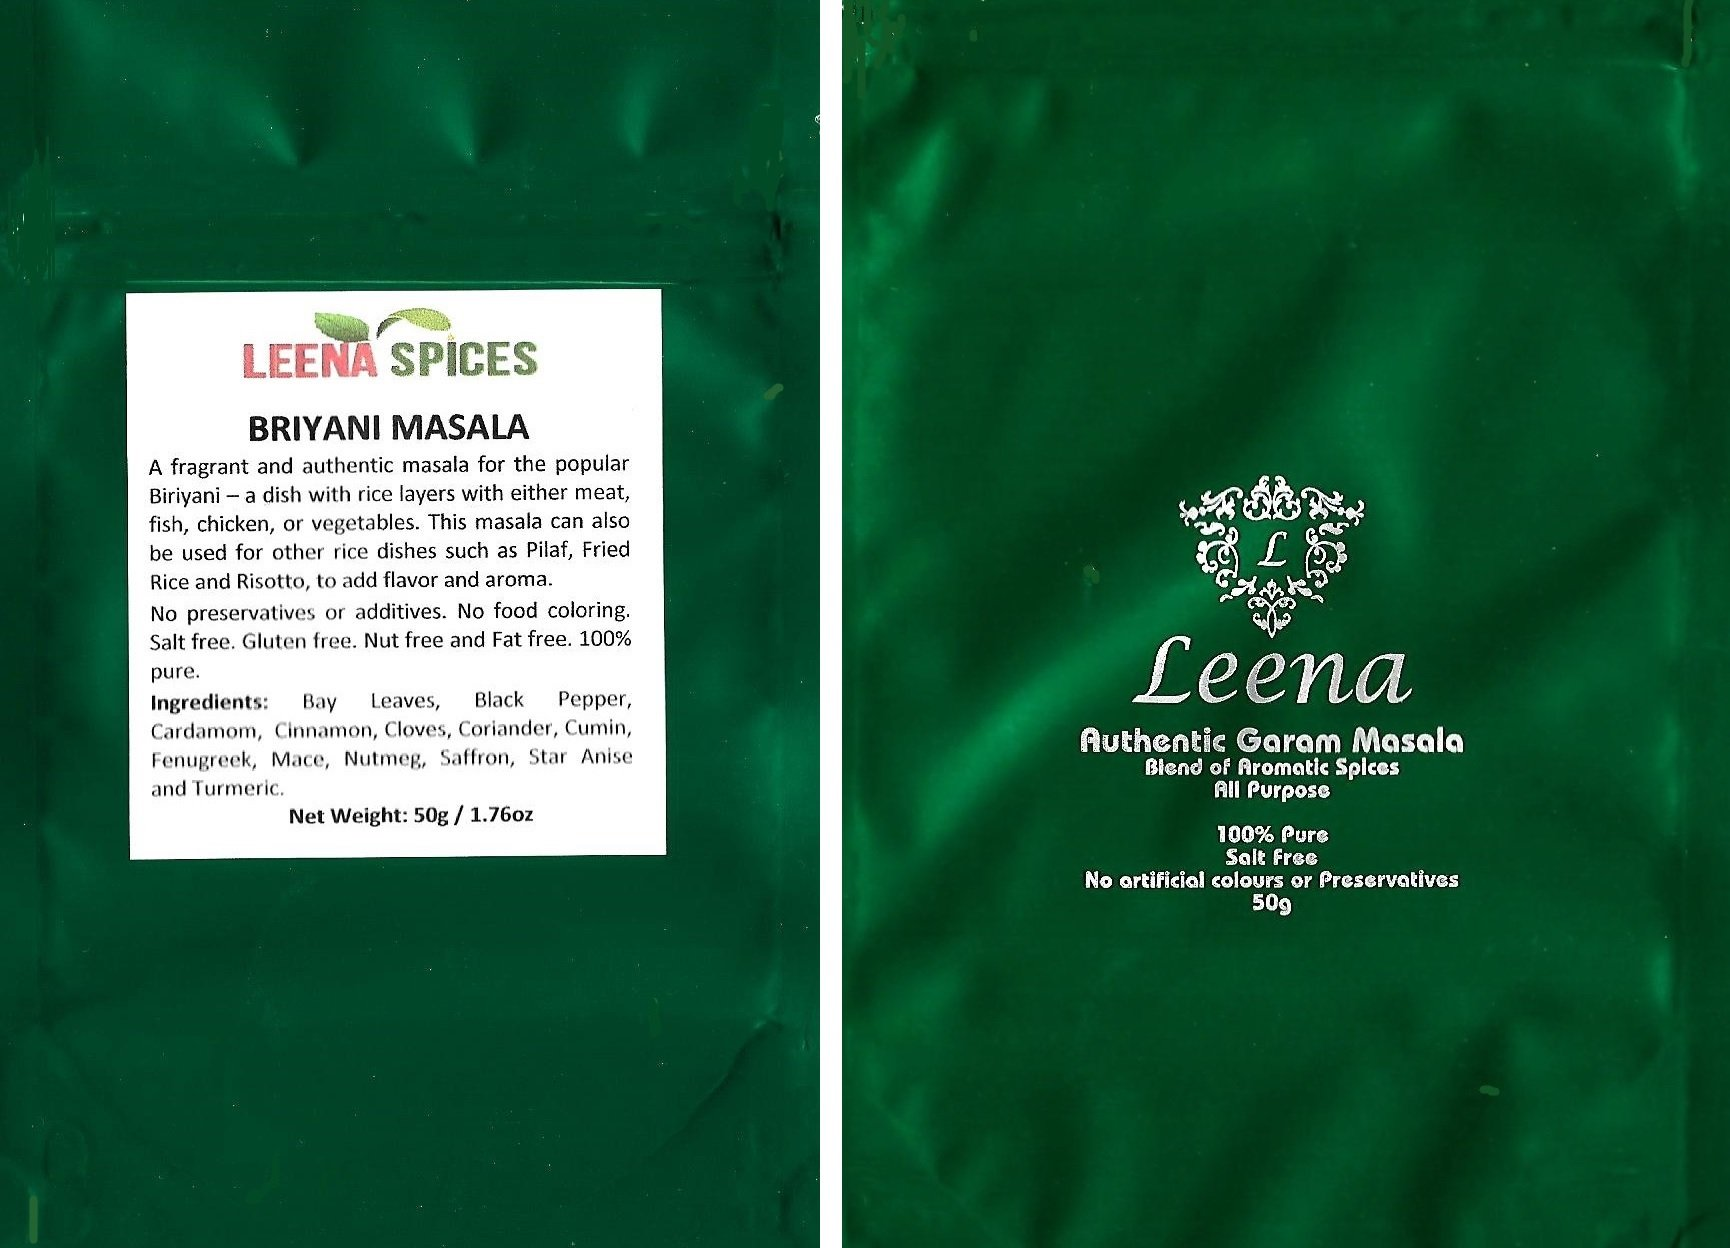 LEENA SPICES - Biryani Spice And Garam Masala - Gluten Free Blend - No Food Color - With Chicken Briyani Recipe - Enjoy Authentic And Pure Quality Products.